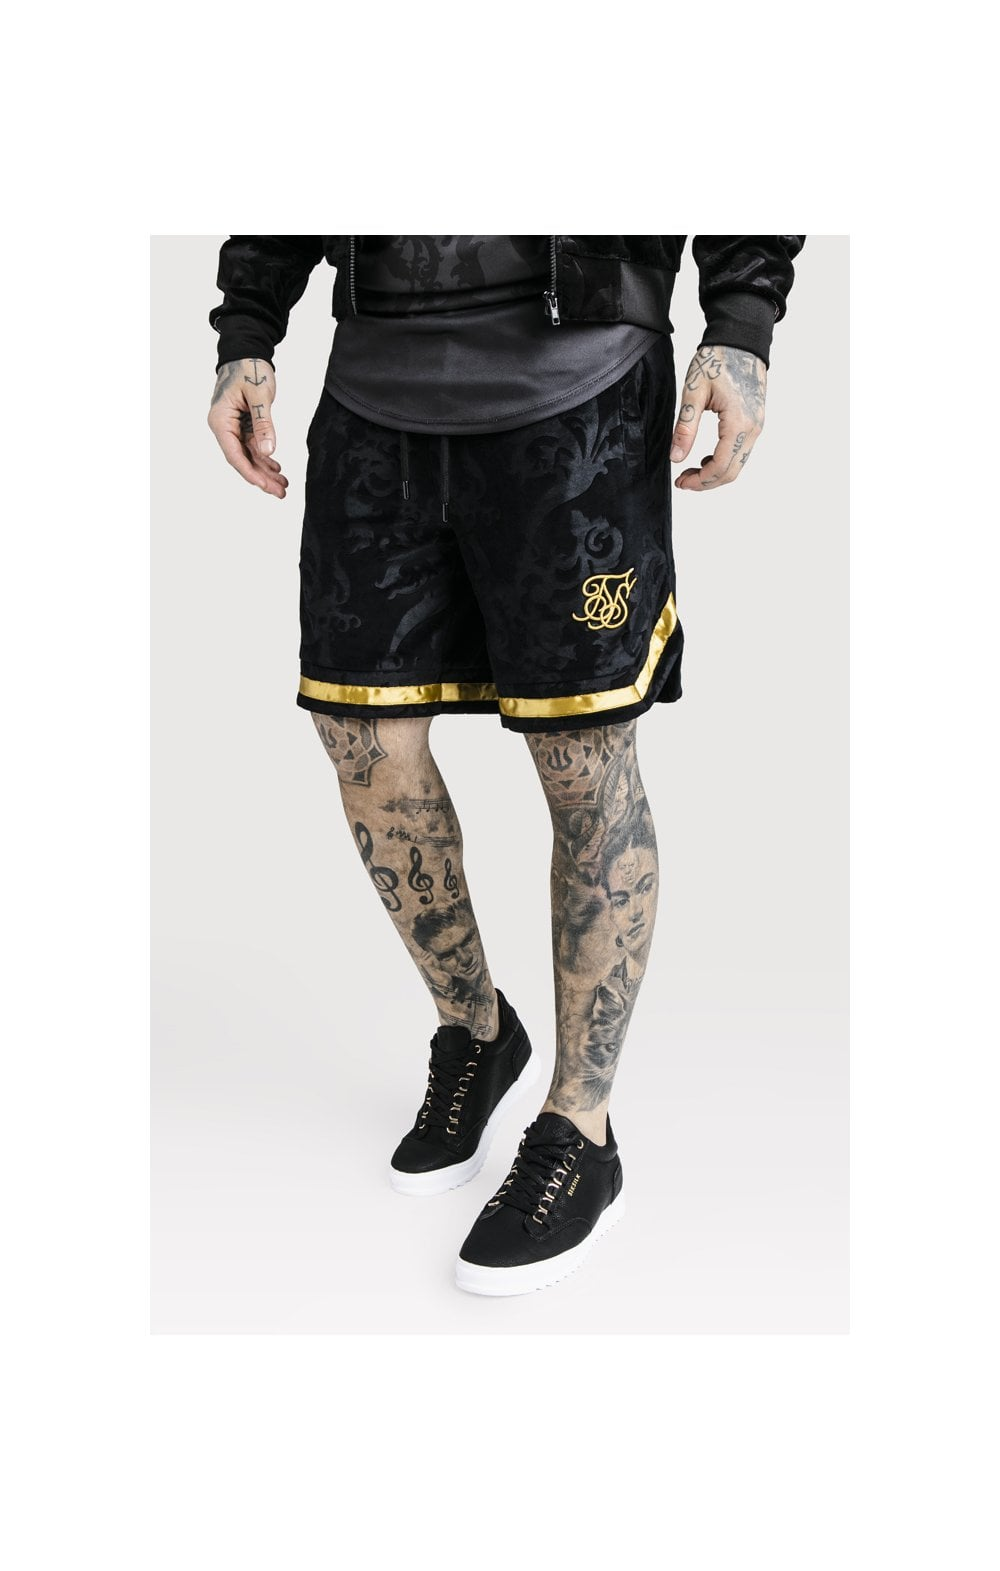 Load image into Gallery viewer, SikSilk x Dani Alves Velour Baseball Shorts - Black